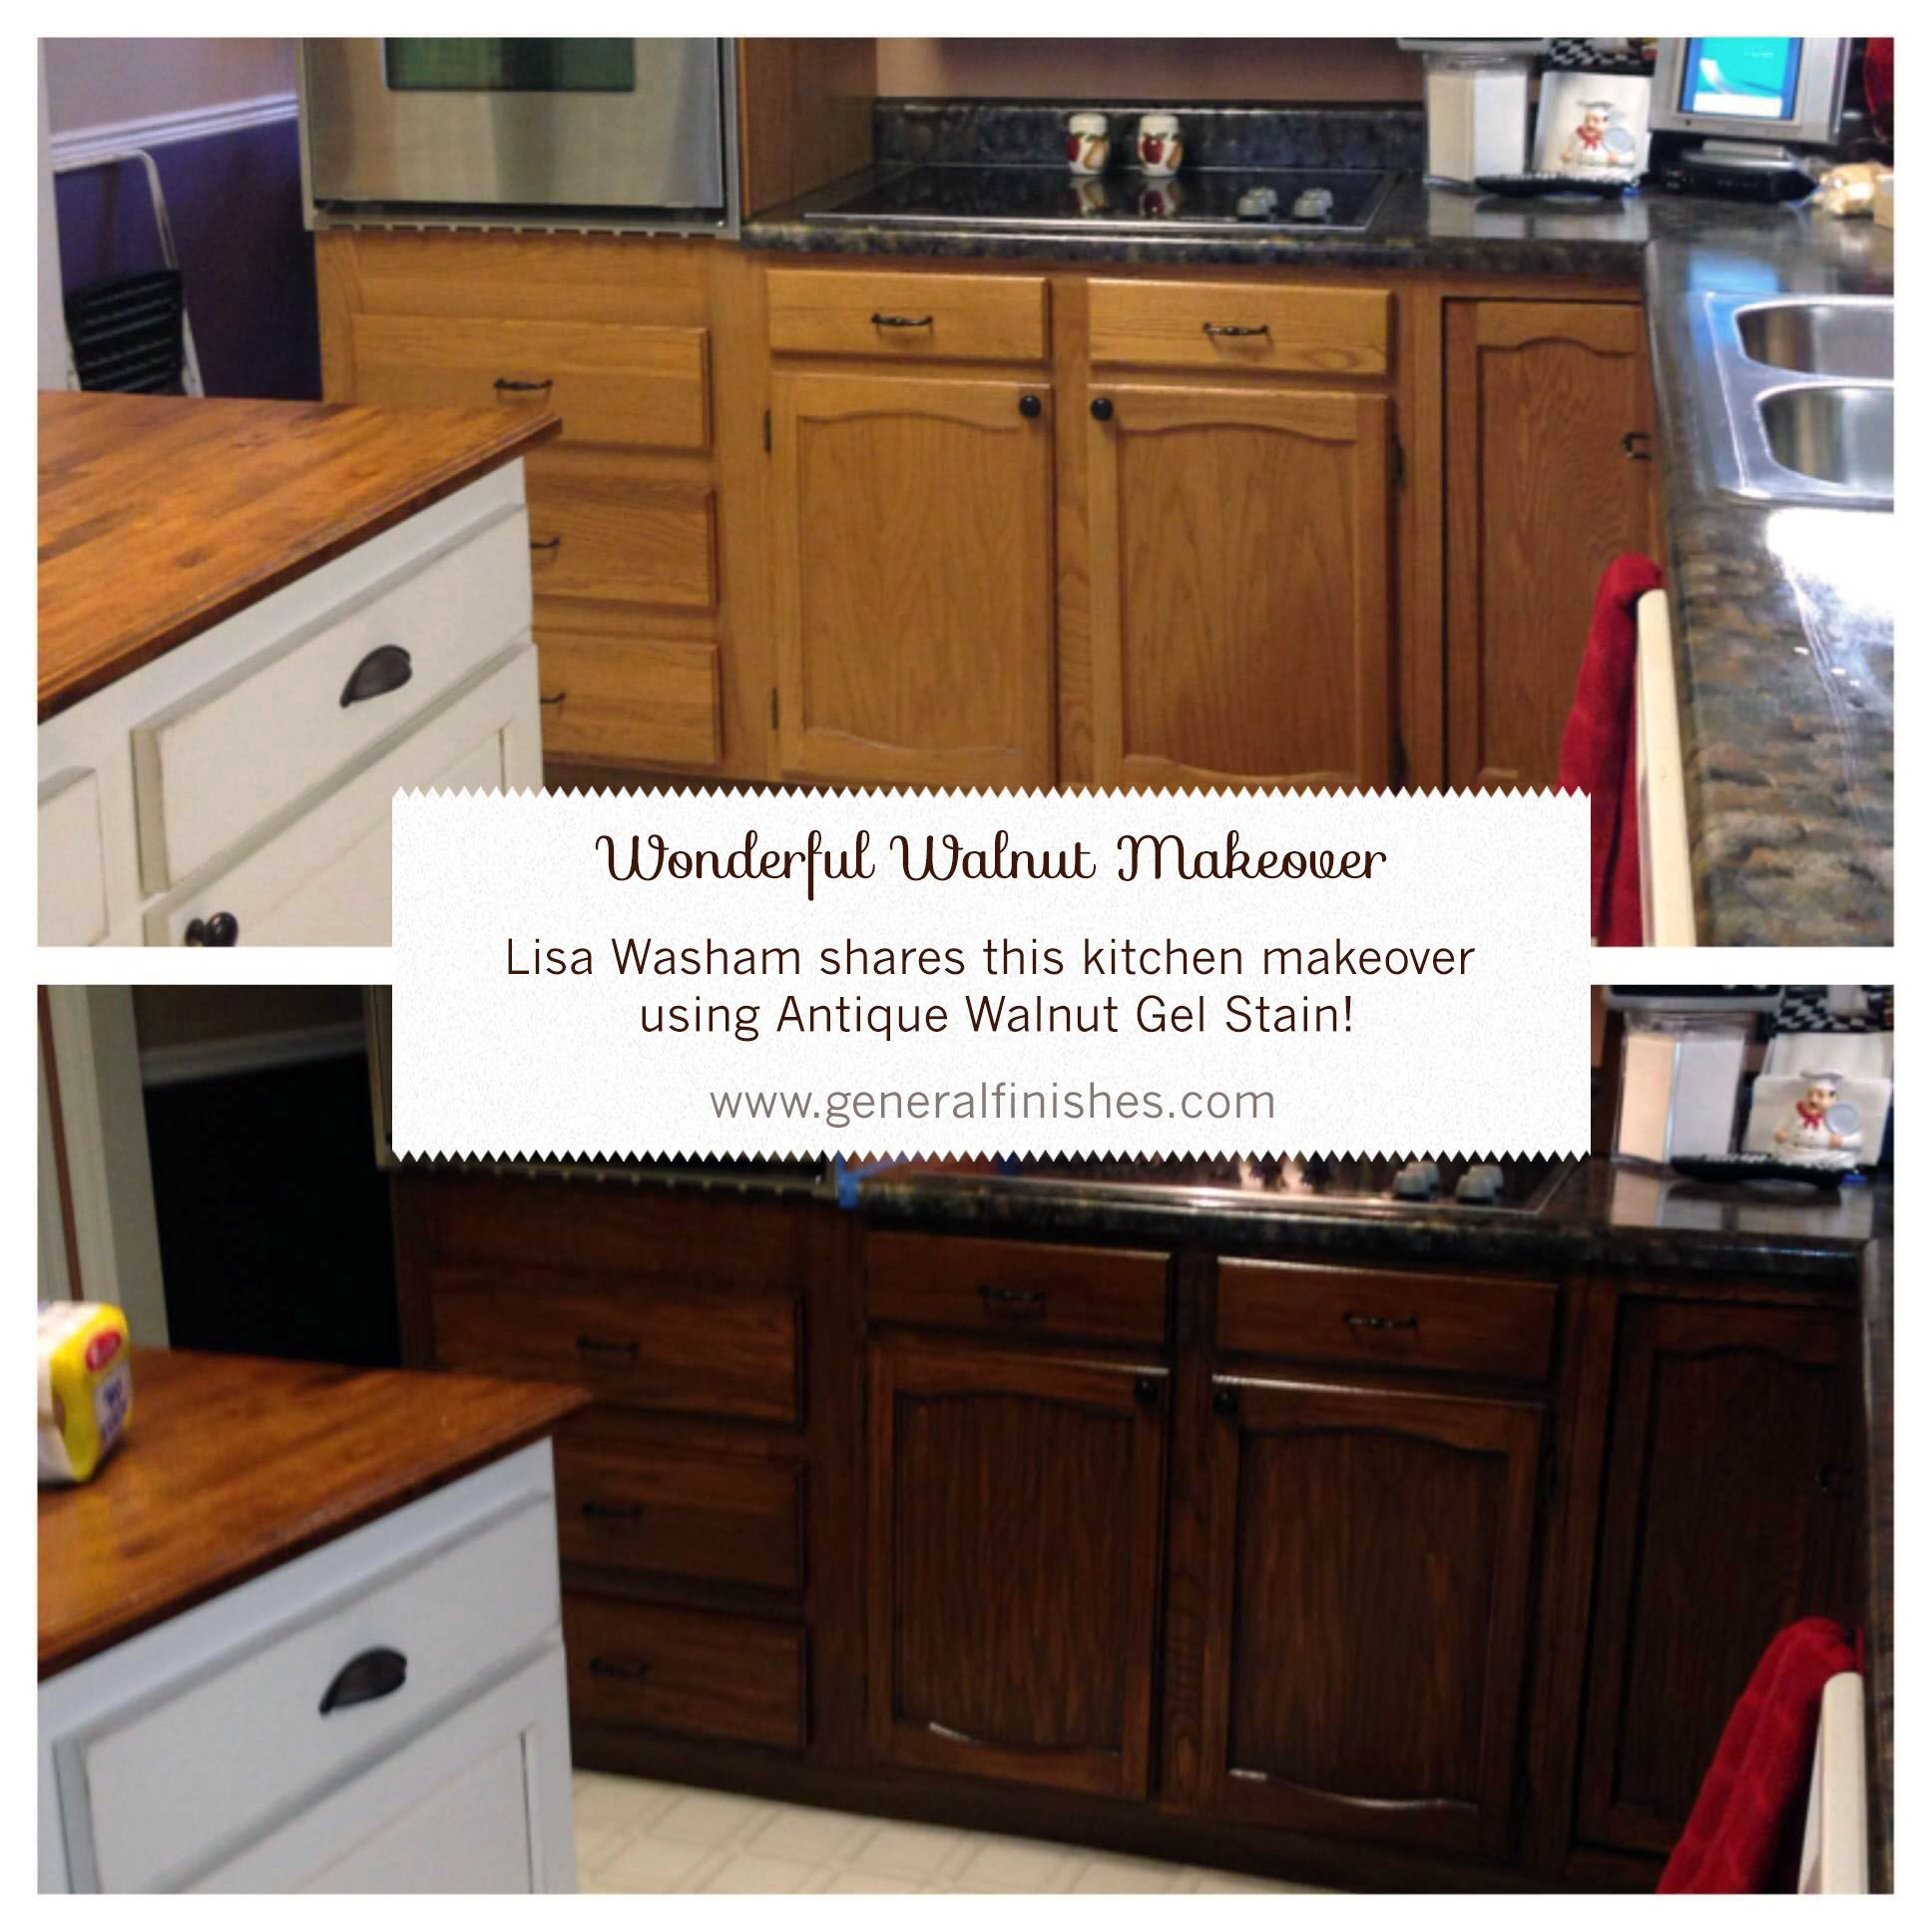 Tips Tricks For Painting Oak Cabinets: Pin By General Finishes On Gel Stains From General